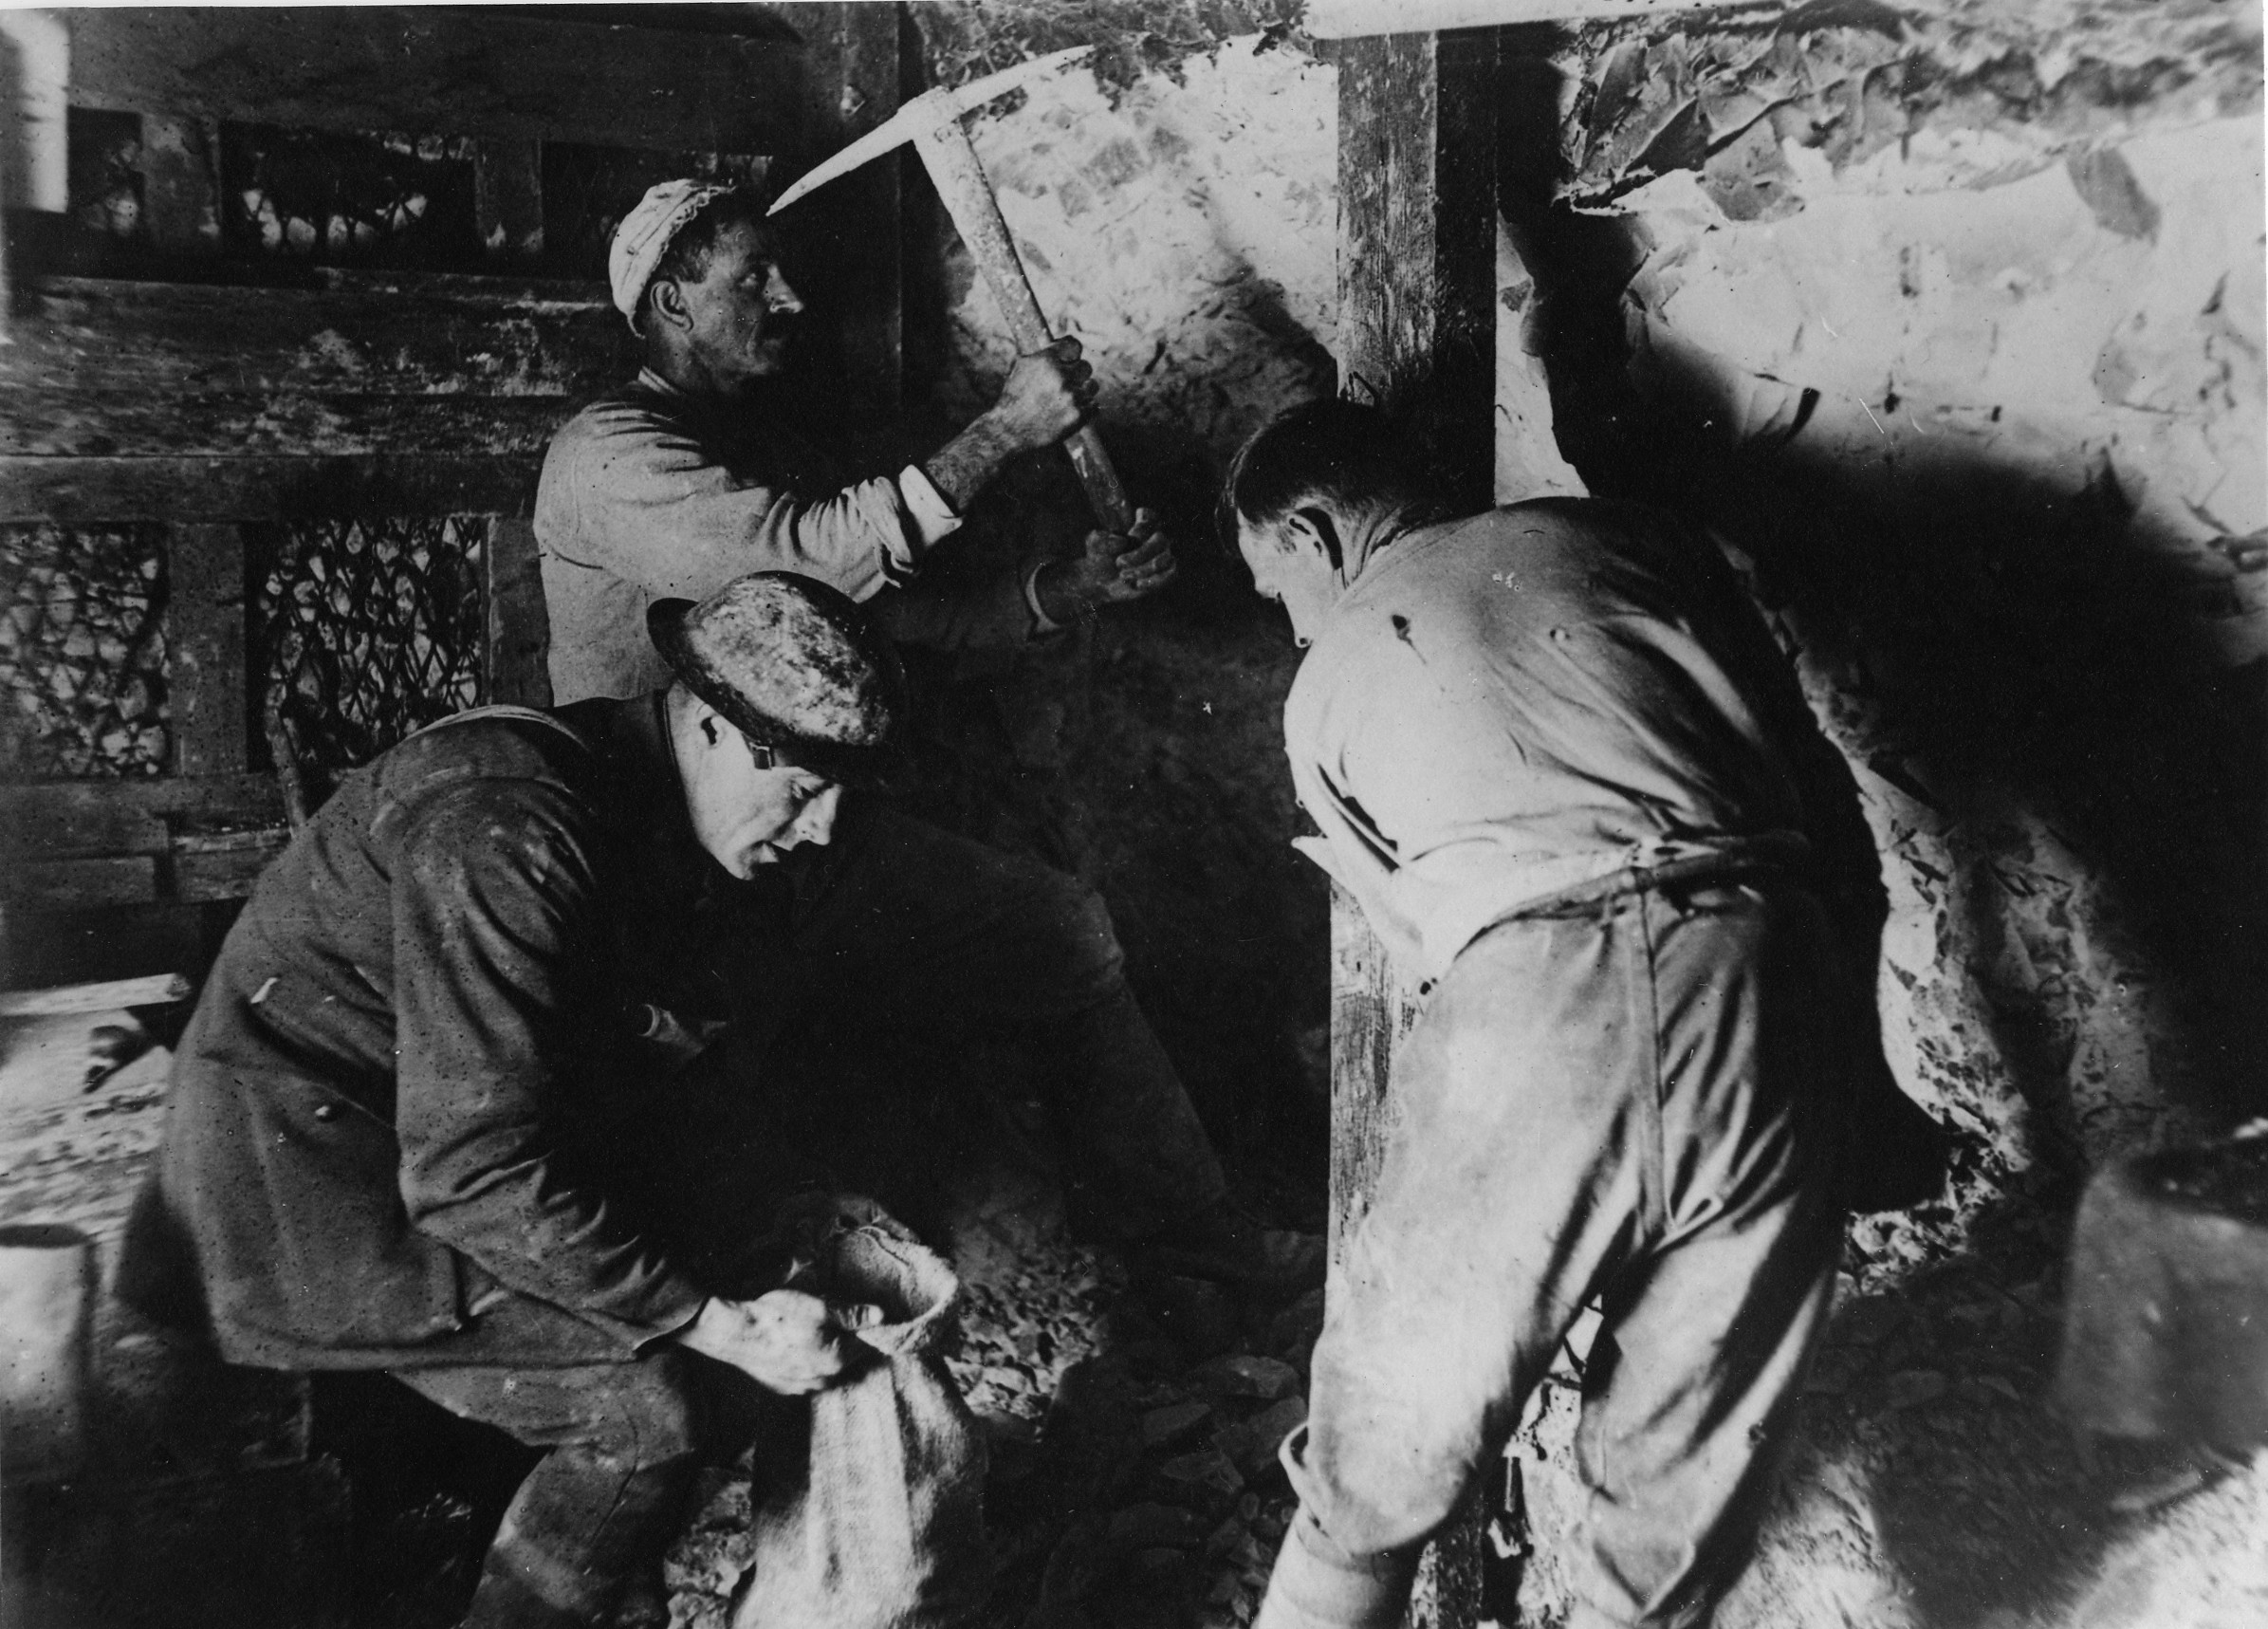 Men of the 3rd Australian Company excavating a chamber in the chalk in the Hulluch subway system.